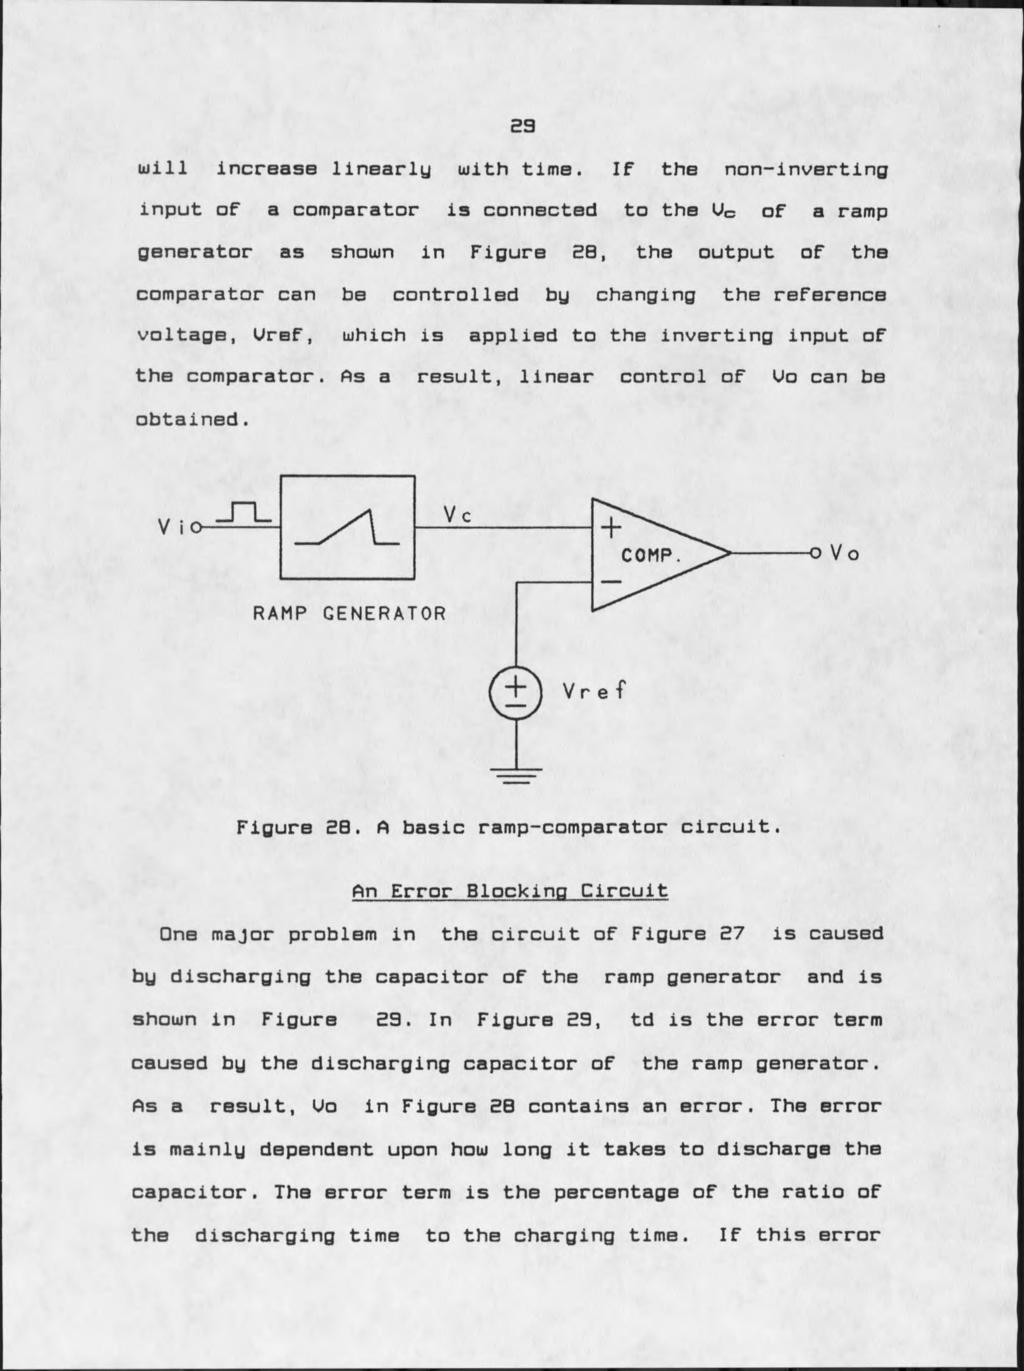 Firing Circuits For Three Phase Power Electronic Pdf This Is Your Basic Comparator Circuit Using The 741 Op Amp Nothing 23 Will Increase Linearly With Time